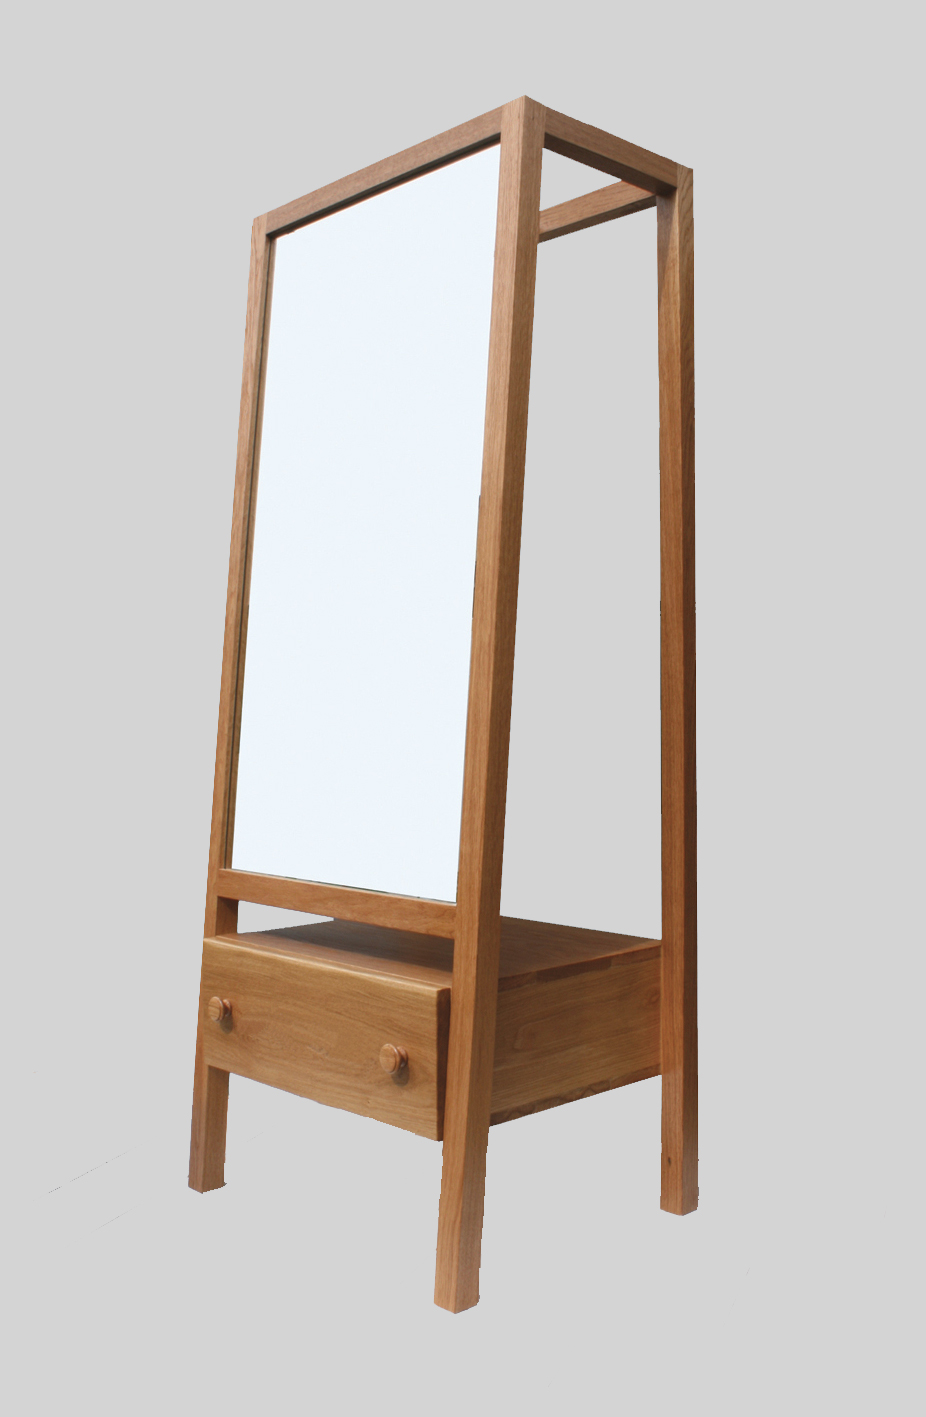 charlie-caffyn-designs-free-standing-oak-mirror-dressing-cabinet-with-drawer